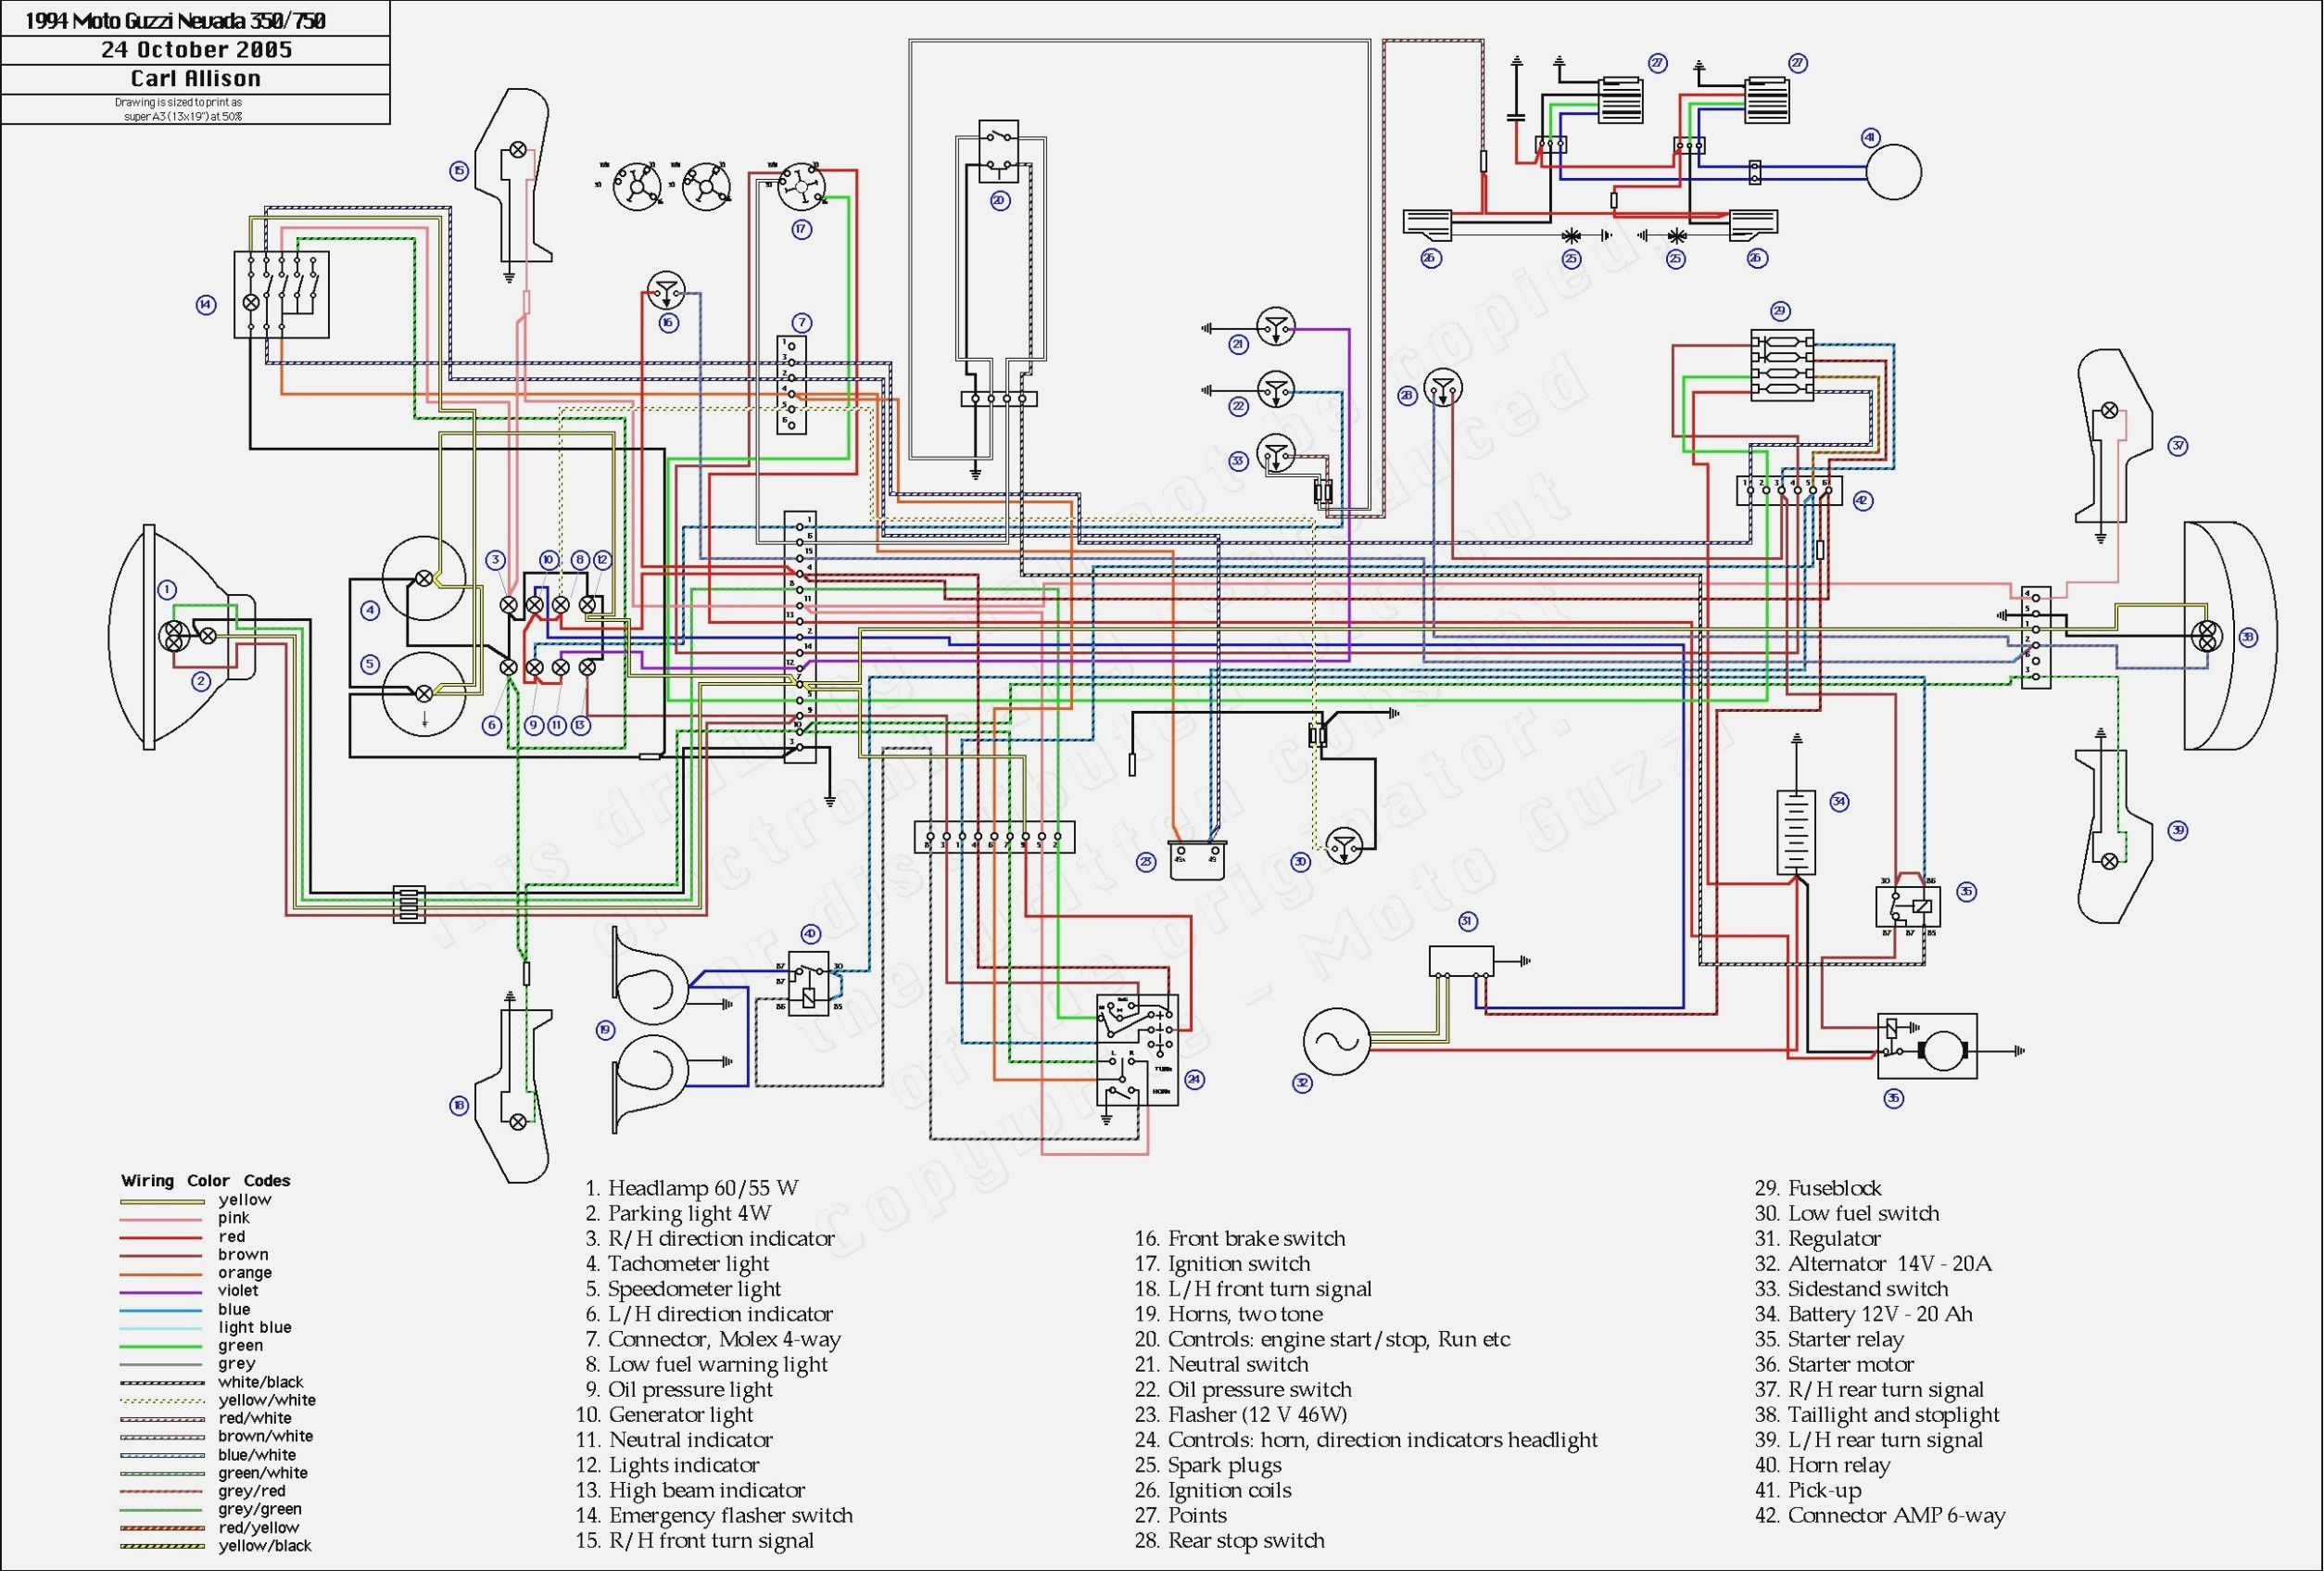 Unique 1995 Jeep Grand Cherokee Ignition Wiring Diagram Sistema Electrico Mecanica De Motos Diagrama De Circuito Electrico